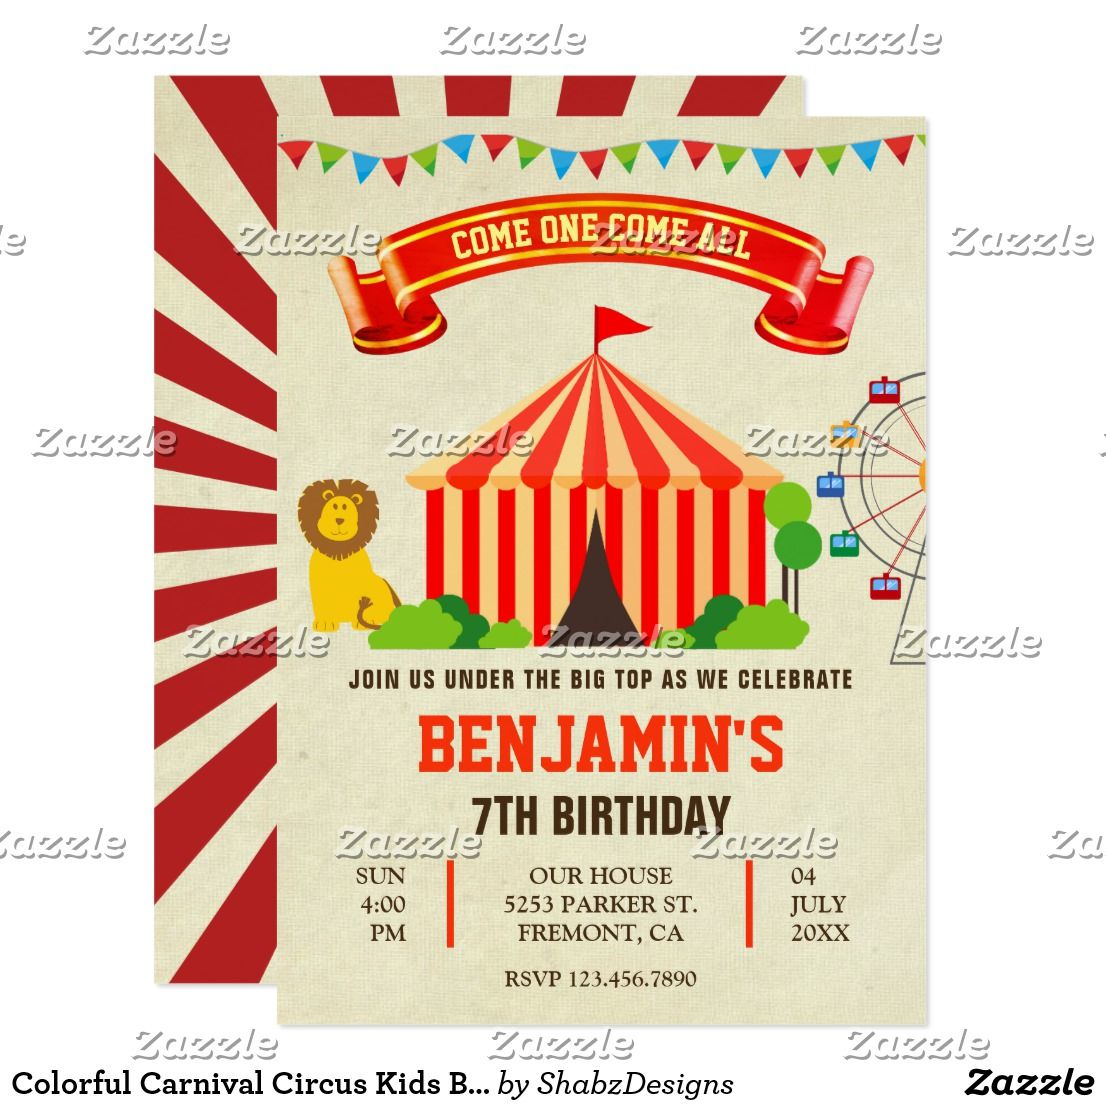 Colorful Carnival Circus Kids Birthday Invitation Amaze your guests ...